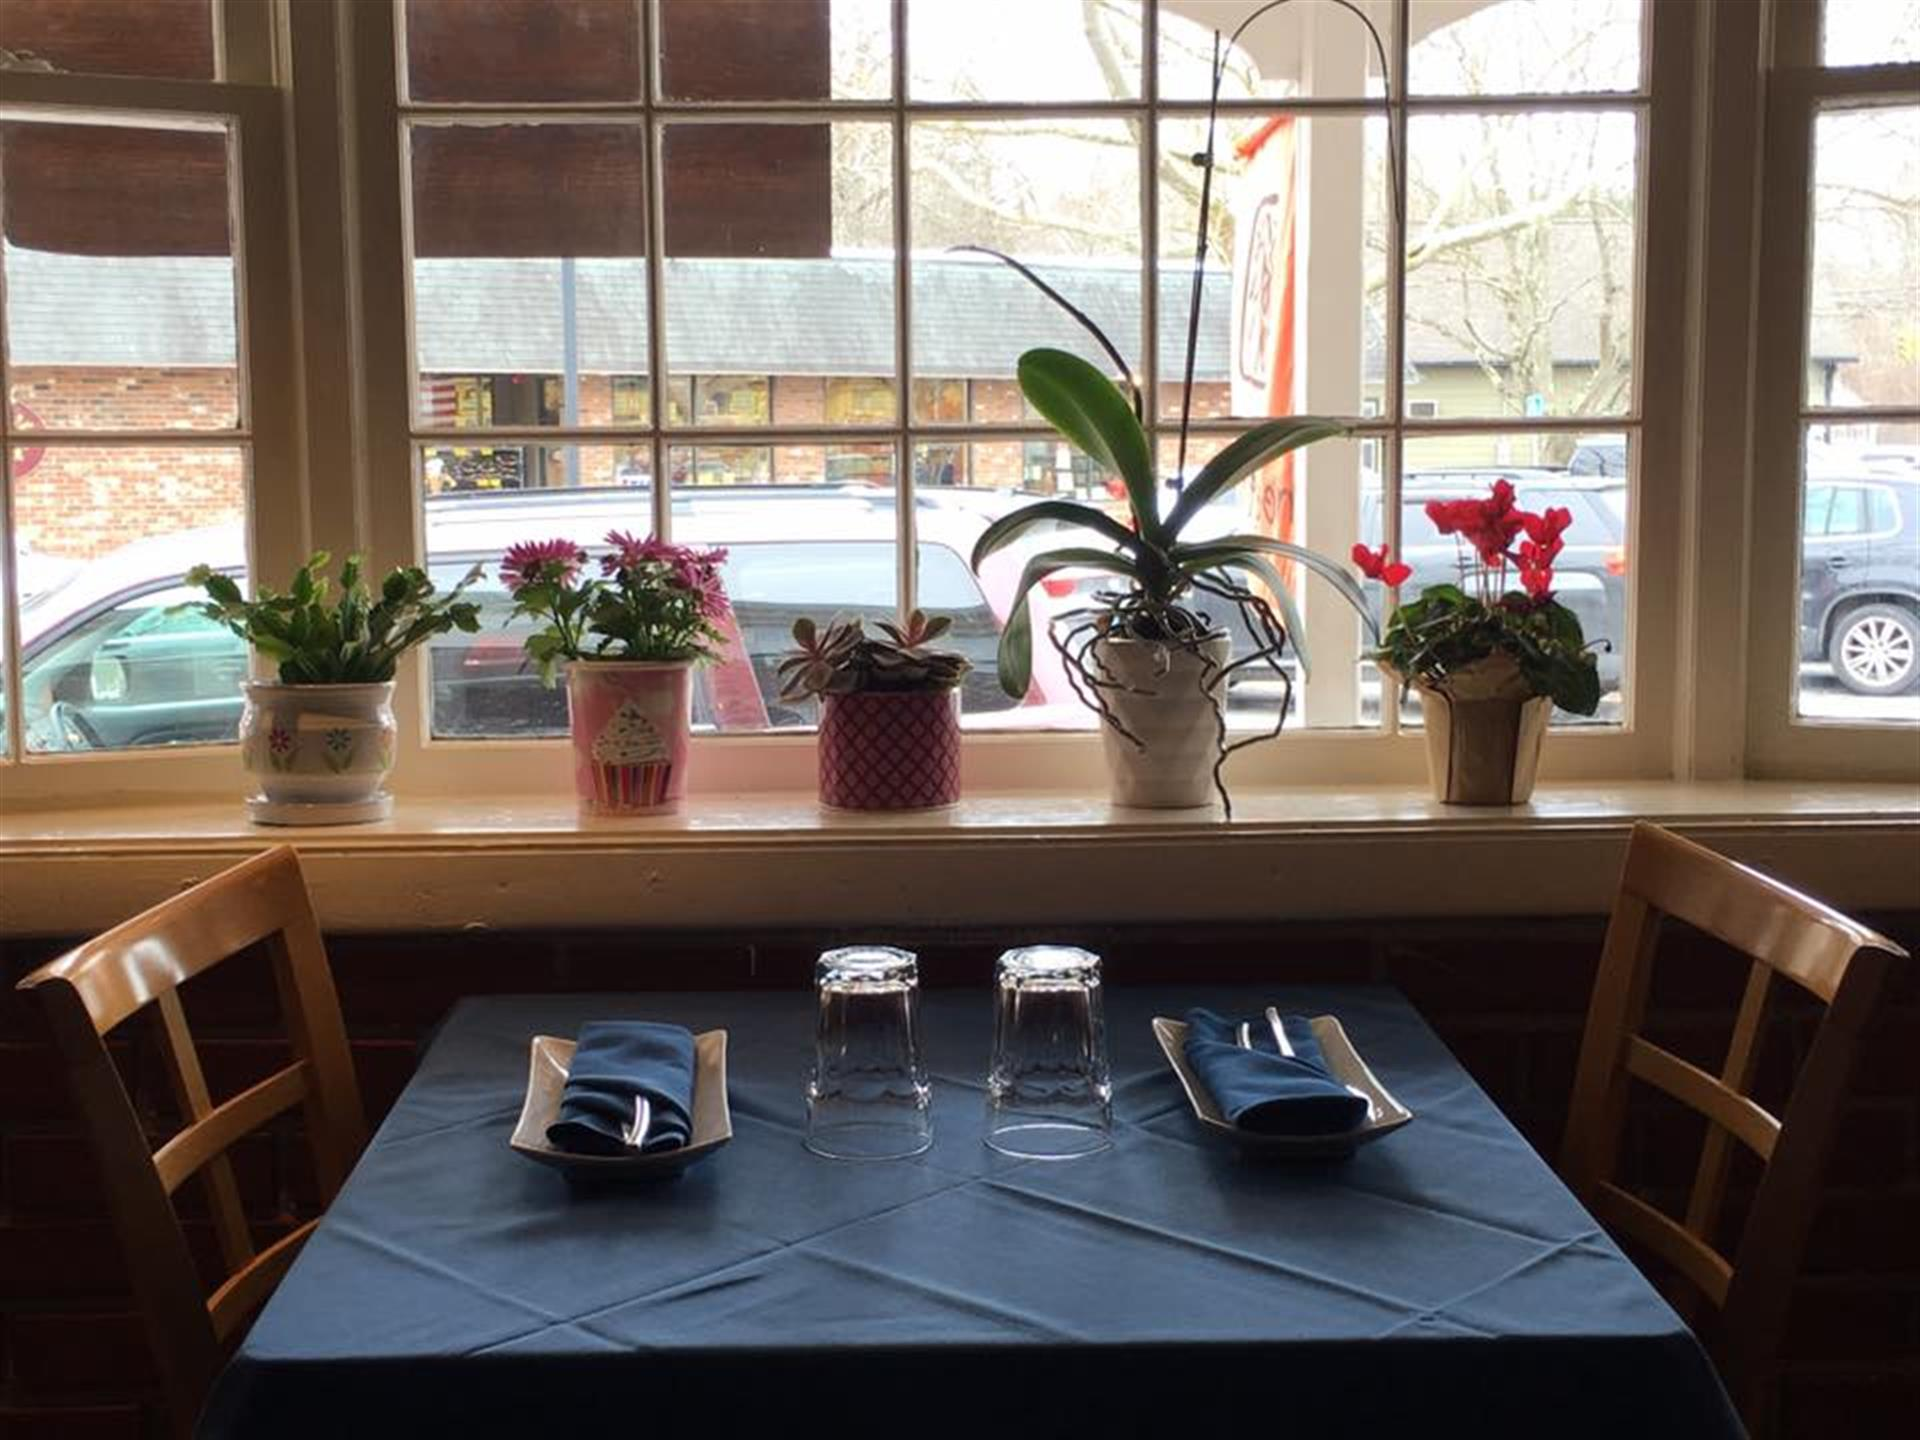 table next to a window with flowers in the window